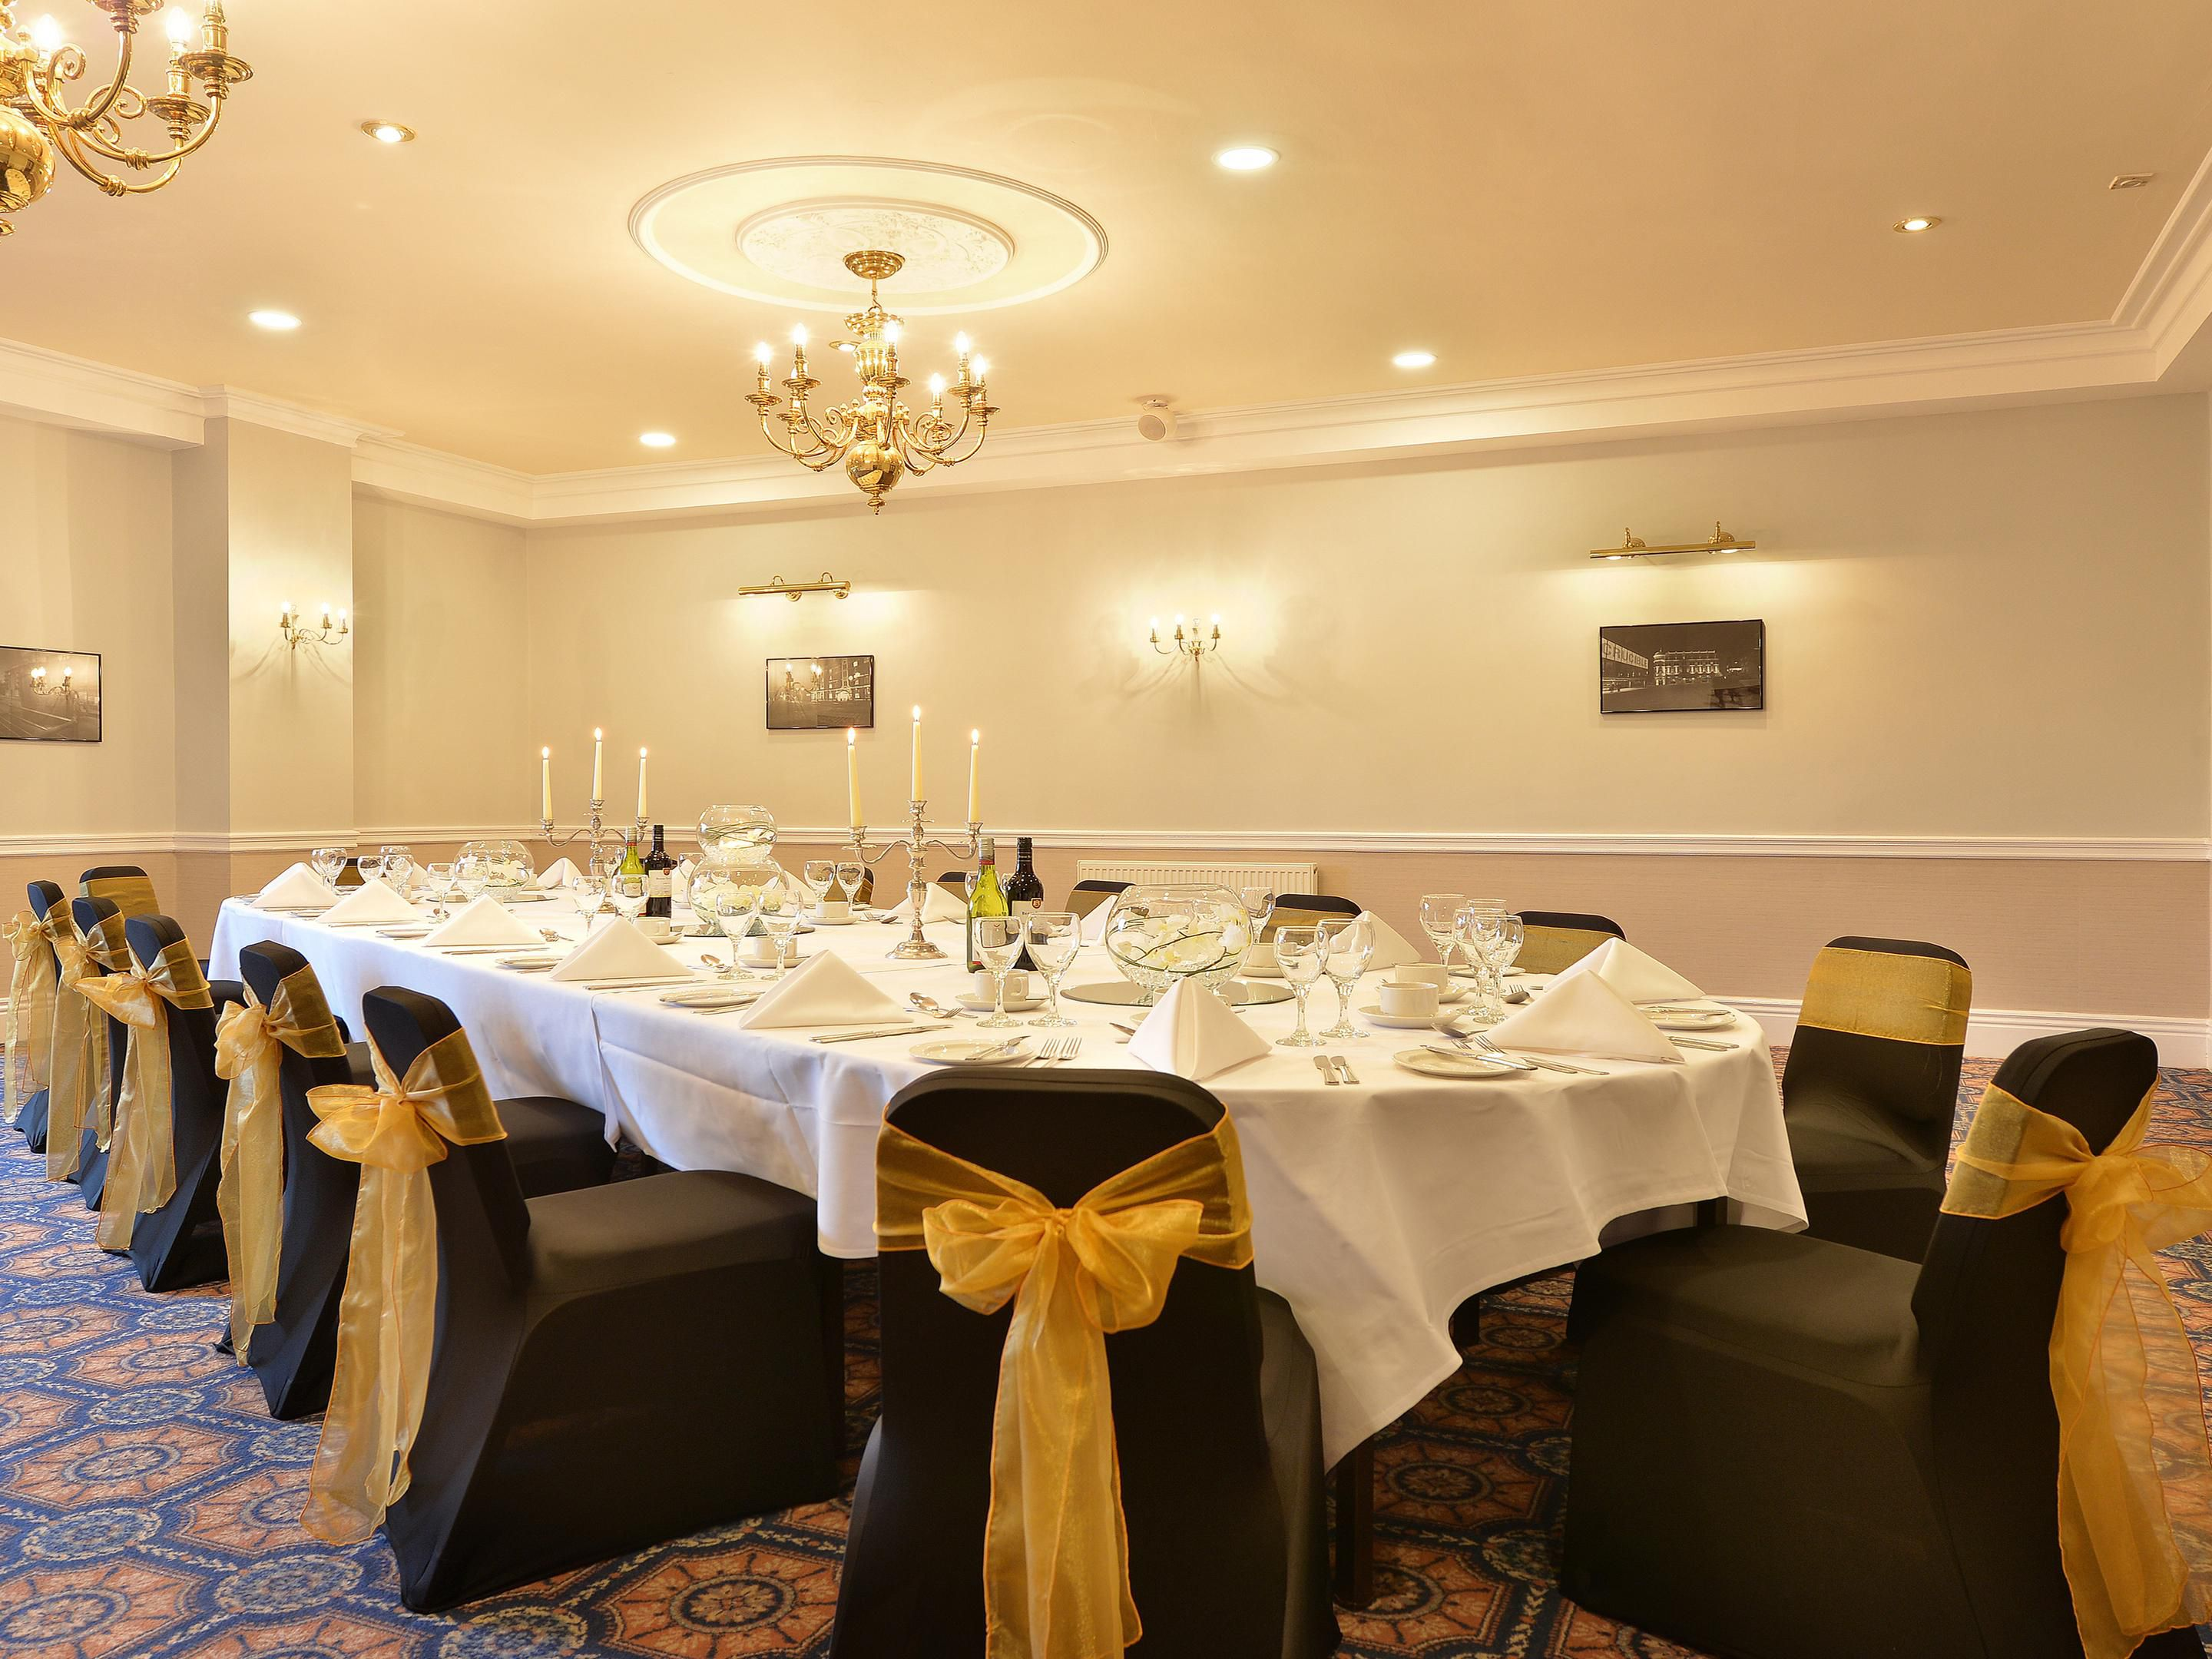 Private dining facilities available at the hotel